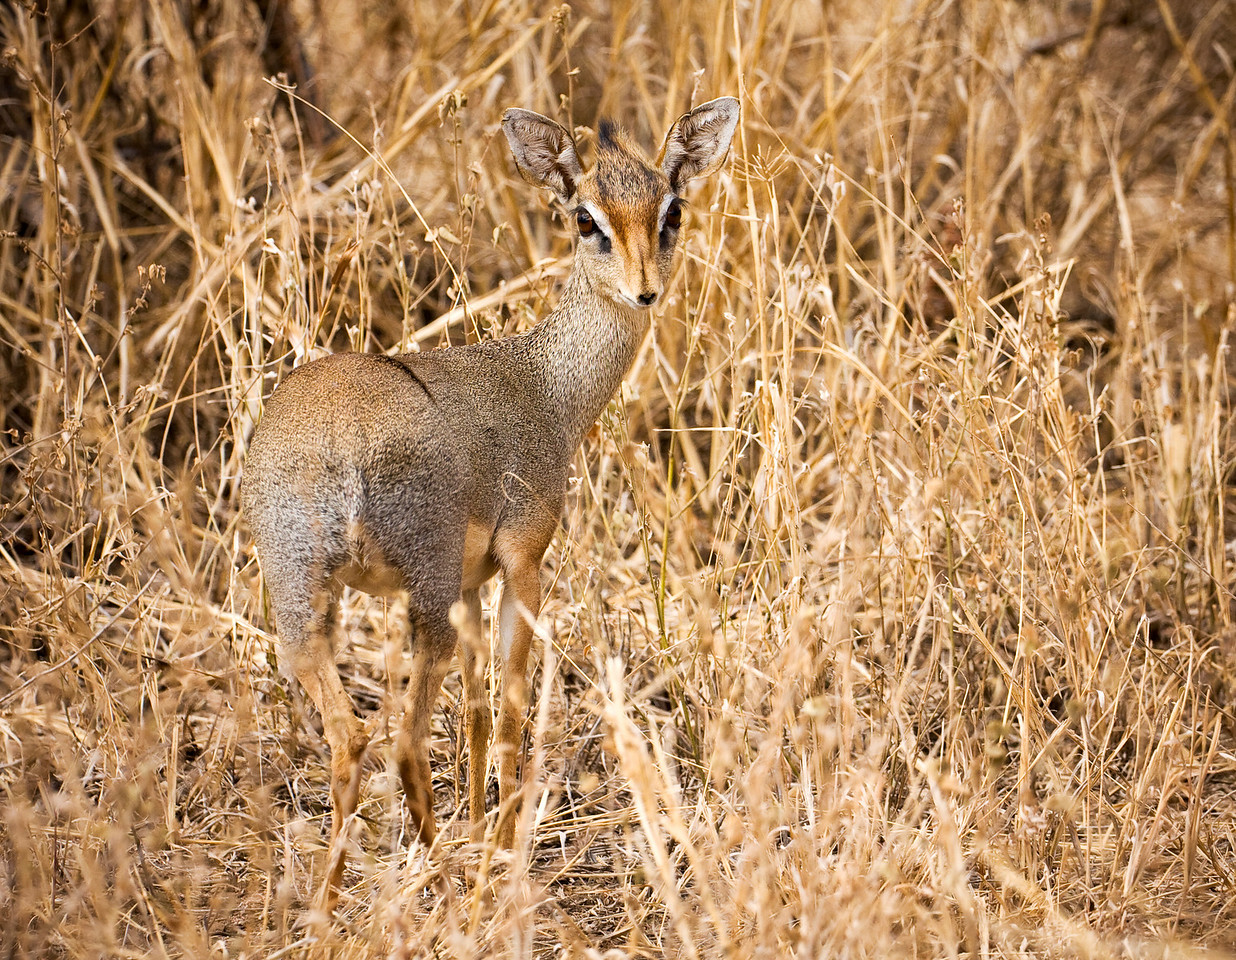 The diminutive Dik-Dik is the smallest member of the antelope family.<br /> <br /> Note that his nose is an 'innie', not an 'outie'.<br /> <br /> Location: Tsavo West National Park, Kenya<br /> <br /> Lens used: Canon 100-400mm f4.5-5.6 IS